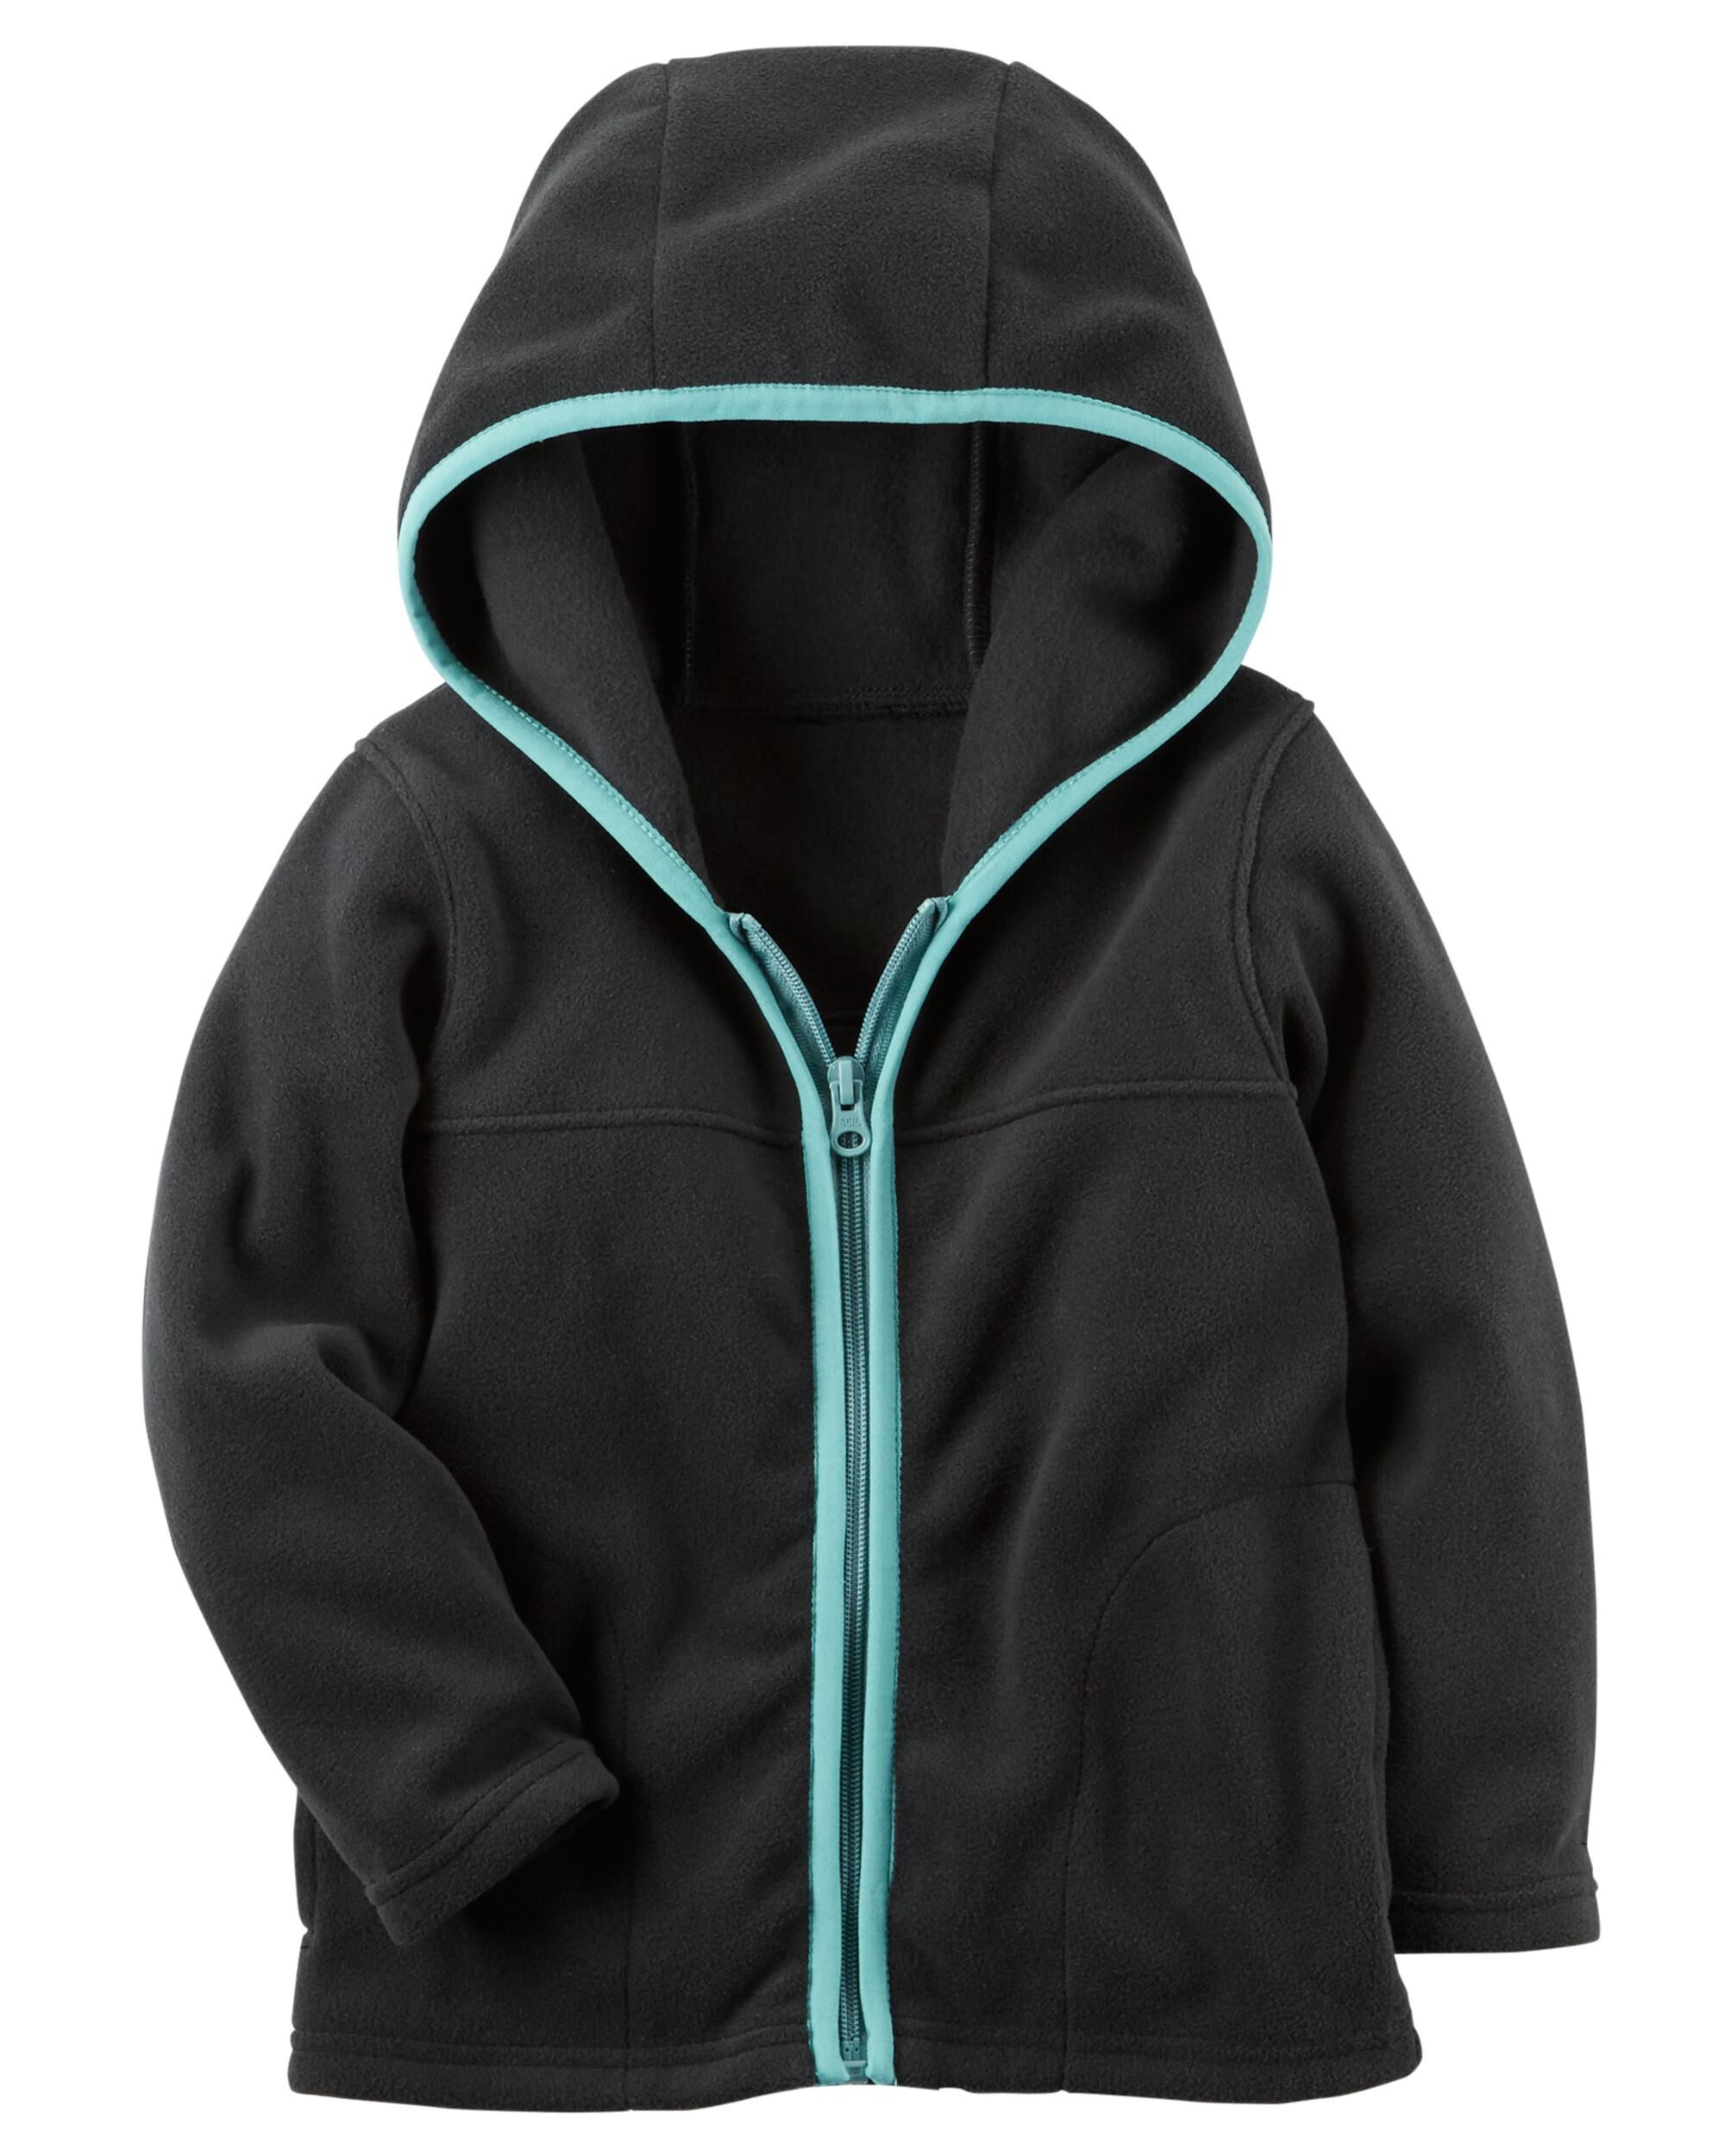 Full-Zip Hooded Fleece Jacket | Carters.com